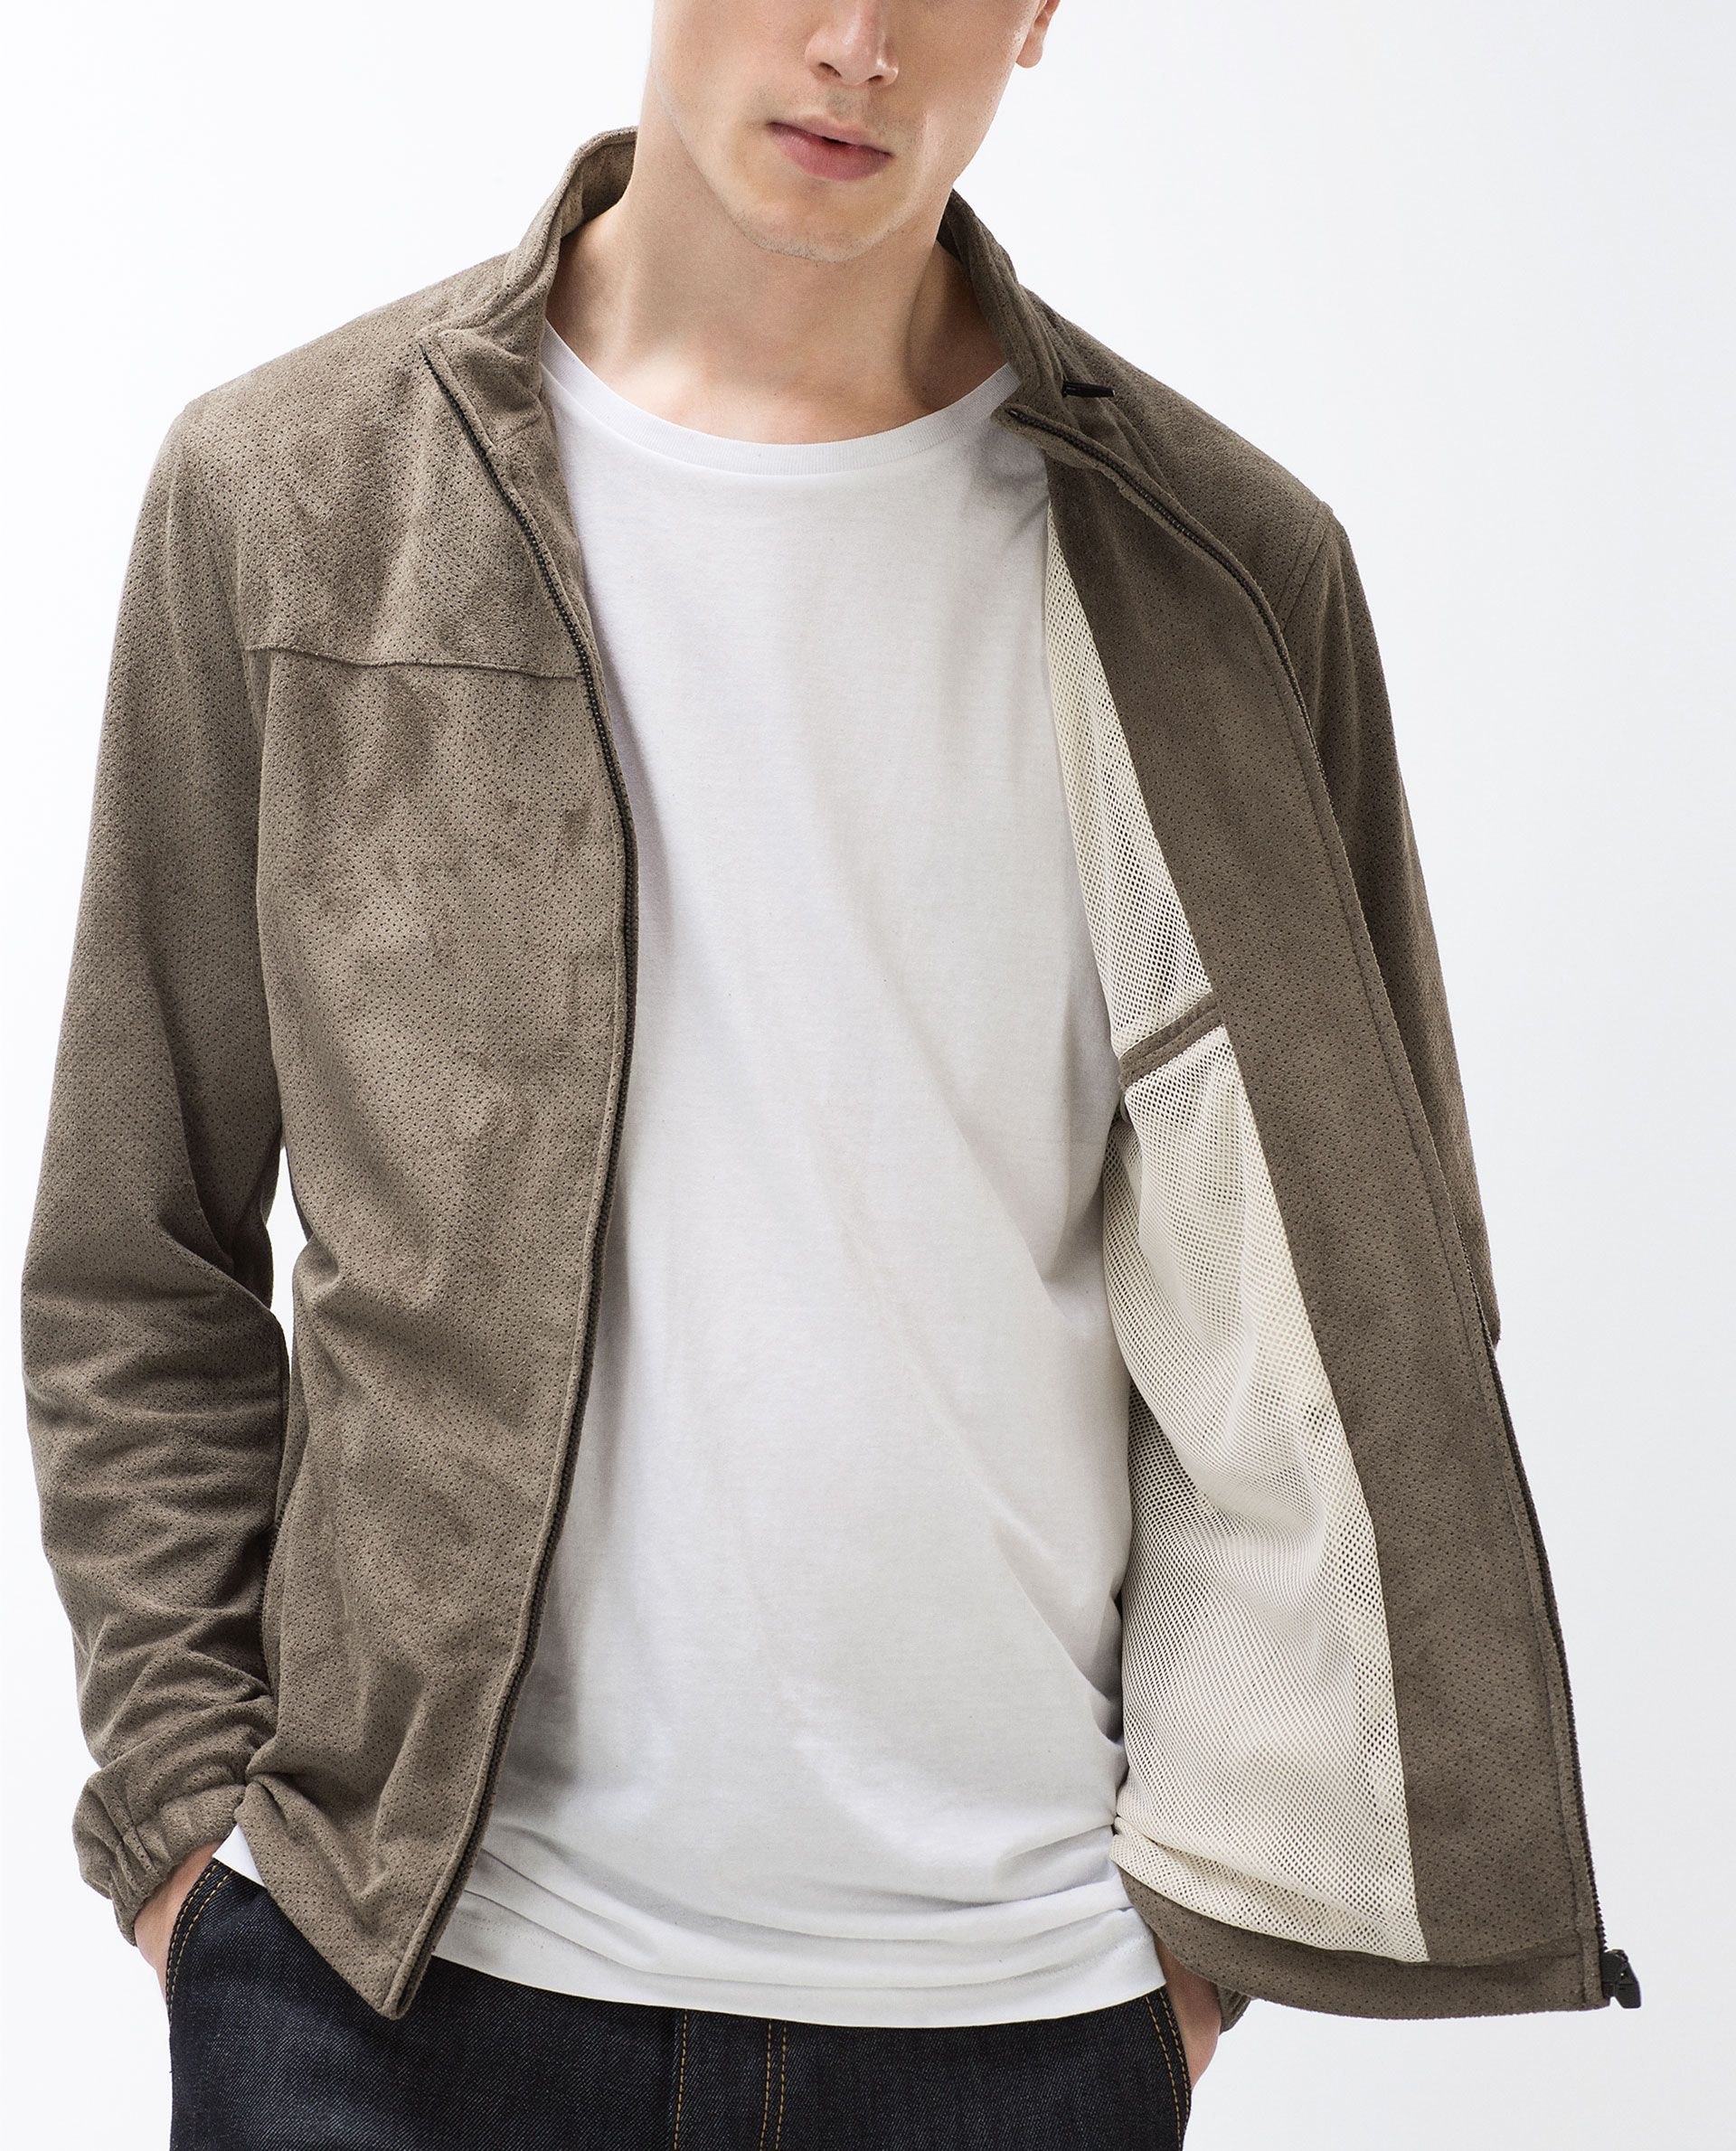 Perforated Faux Suede Jacket New In Man Collection Ss16 Outerwear Sale Faux Suede Jacket Jackets